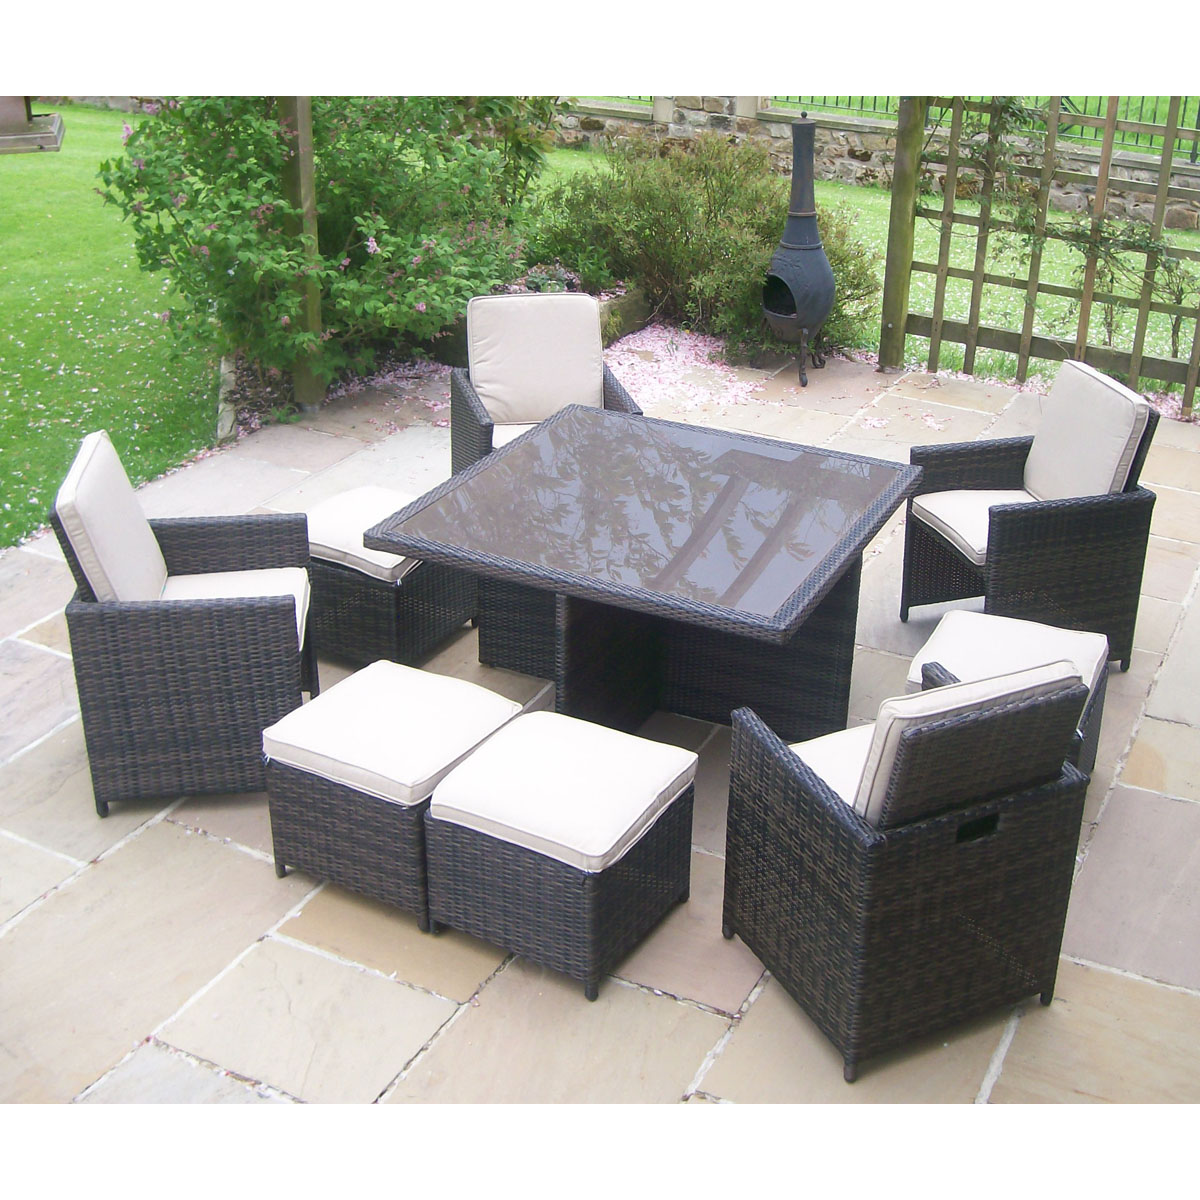 Rattan wicker garden furniture table 4 chair patio set ebay for Patio furniture table set